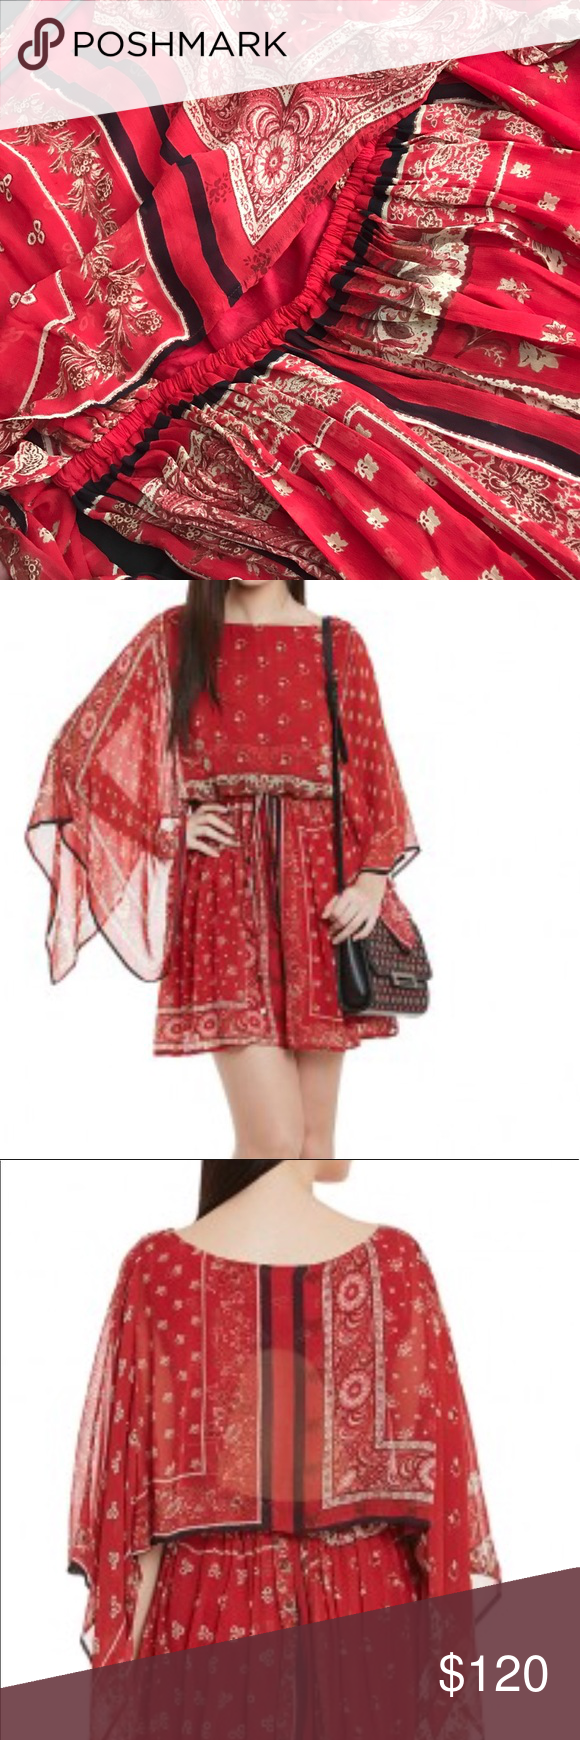 Label ritu kumar red dress bought from india printed short dress by